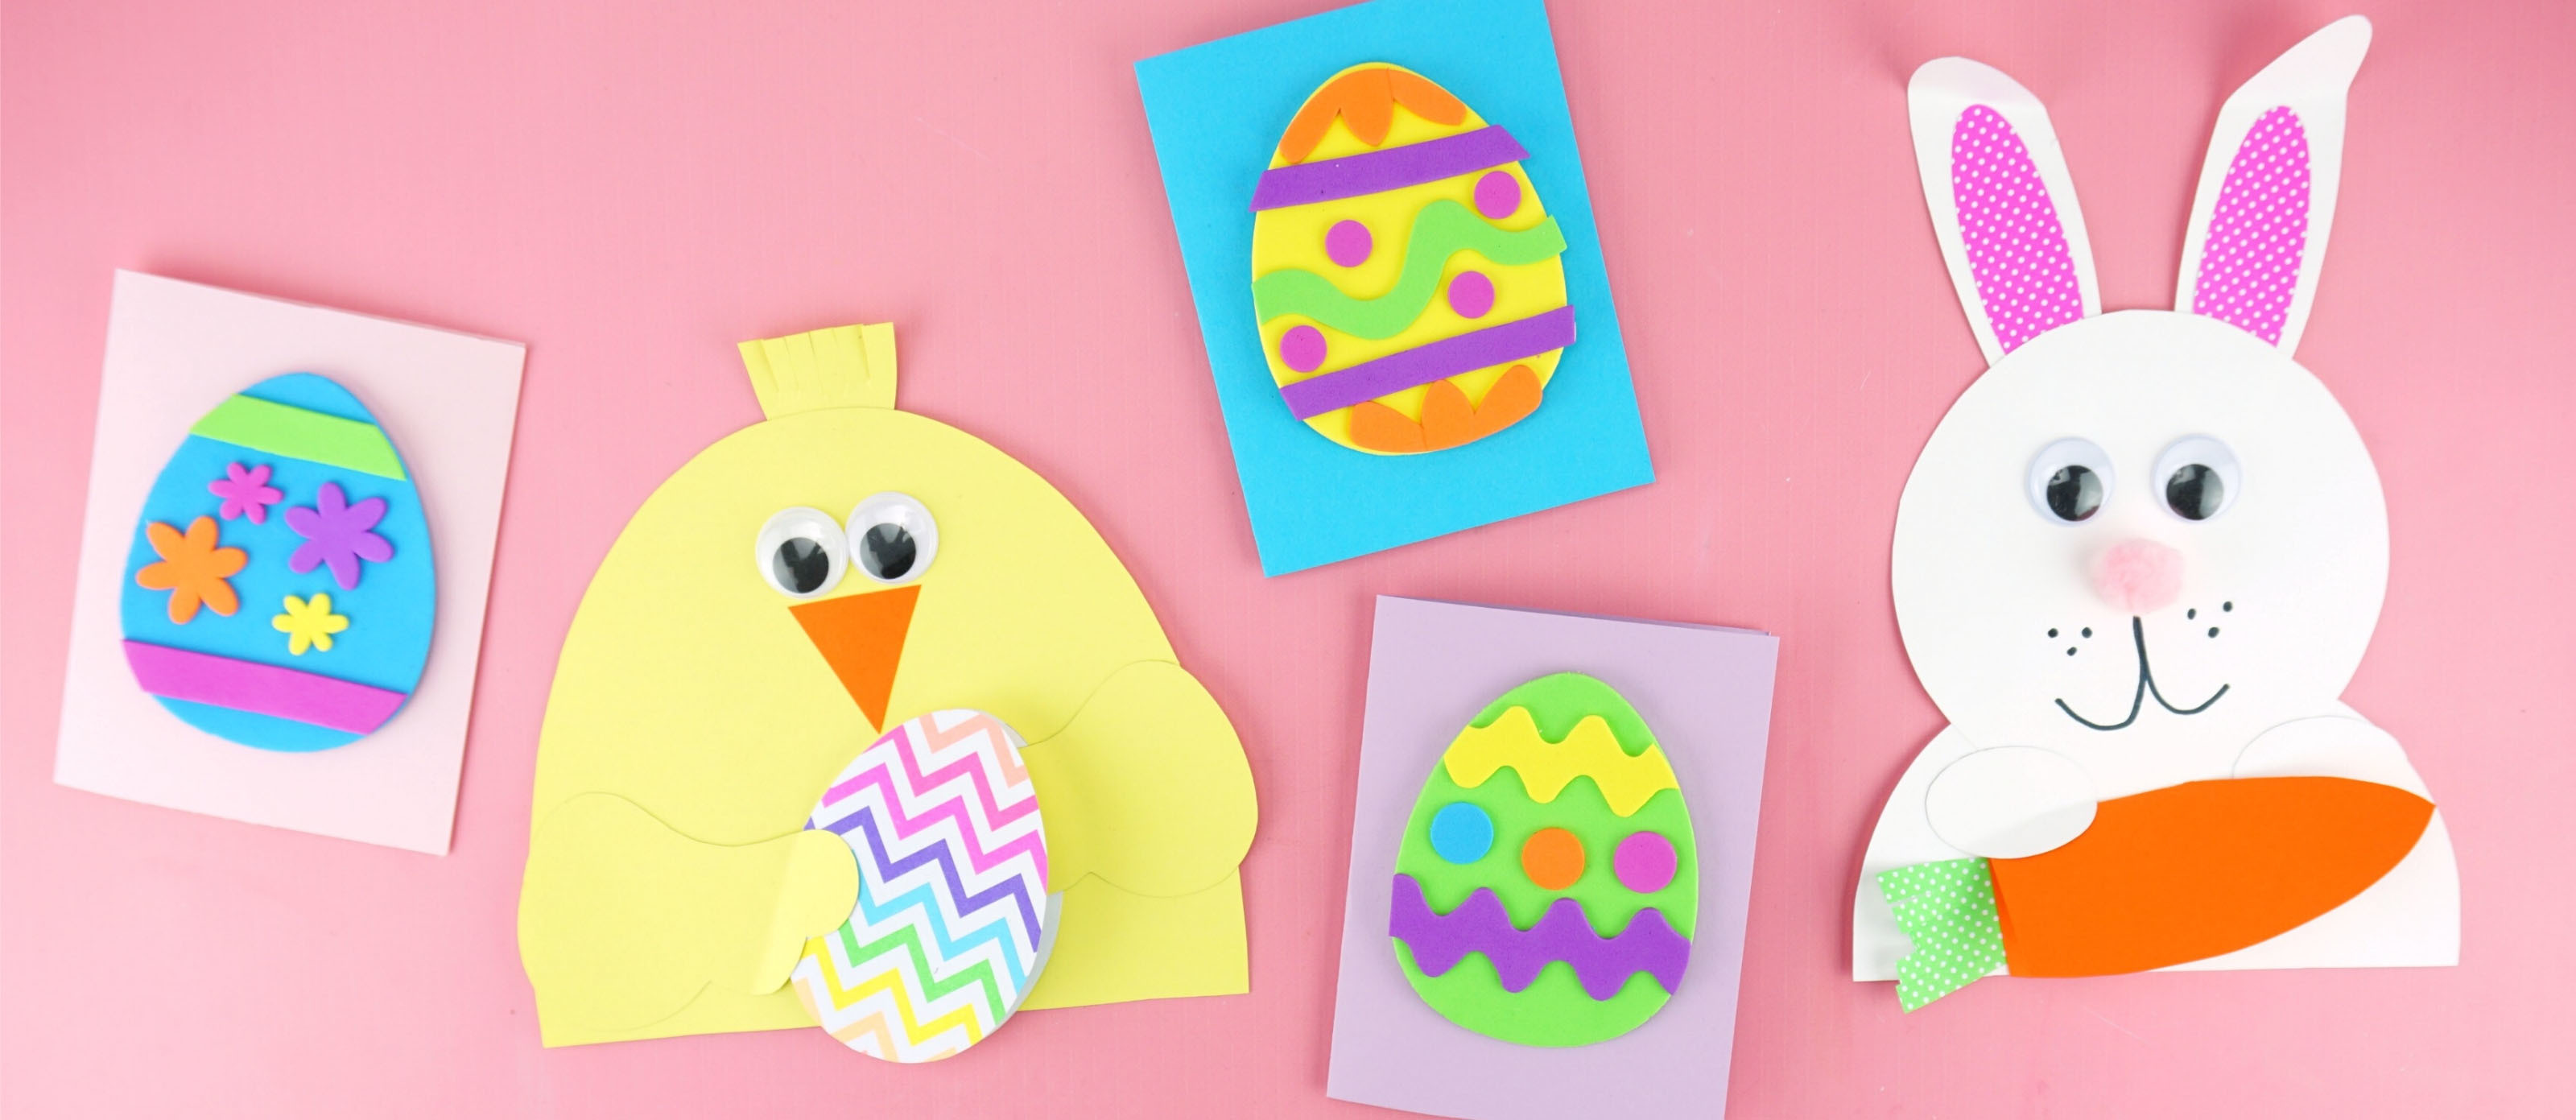 Egg Painting Stencil Set Paint Brush Easter Craft Kid Fun Bunny Party Decoration